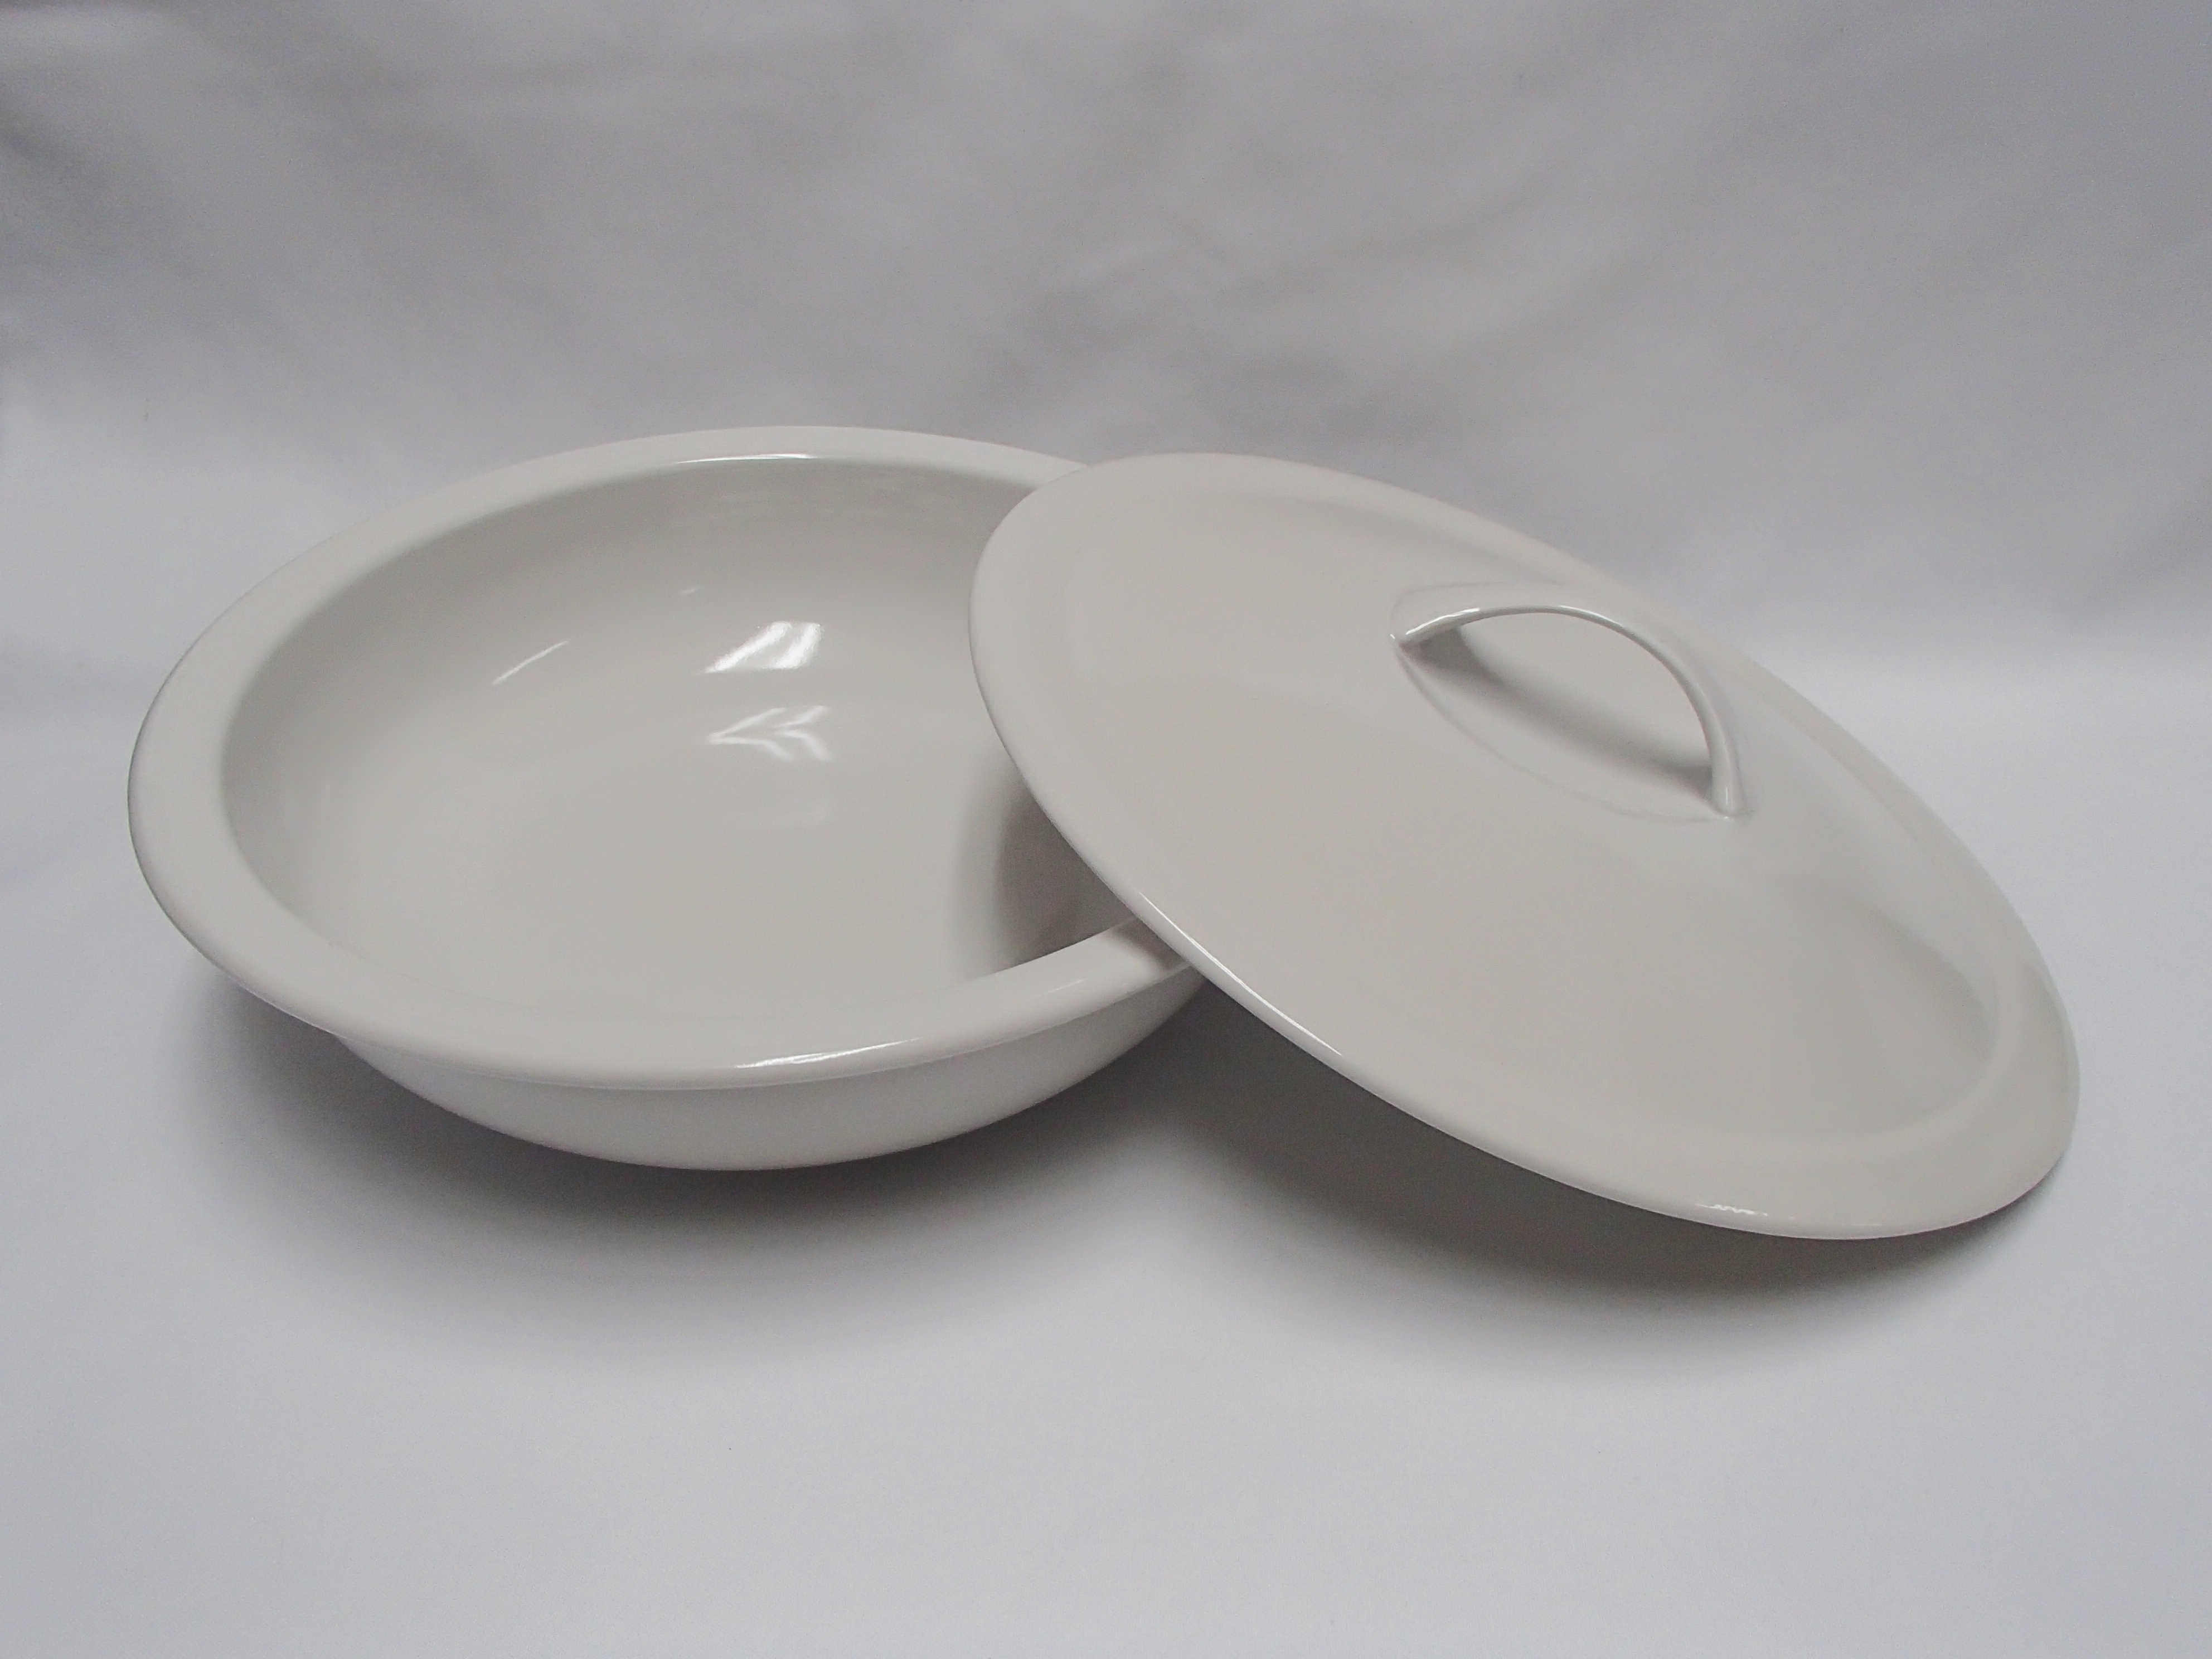 Crockery hire for weddings parties & events